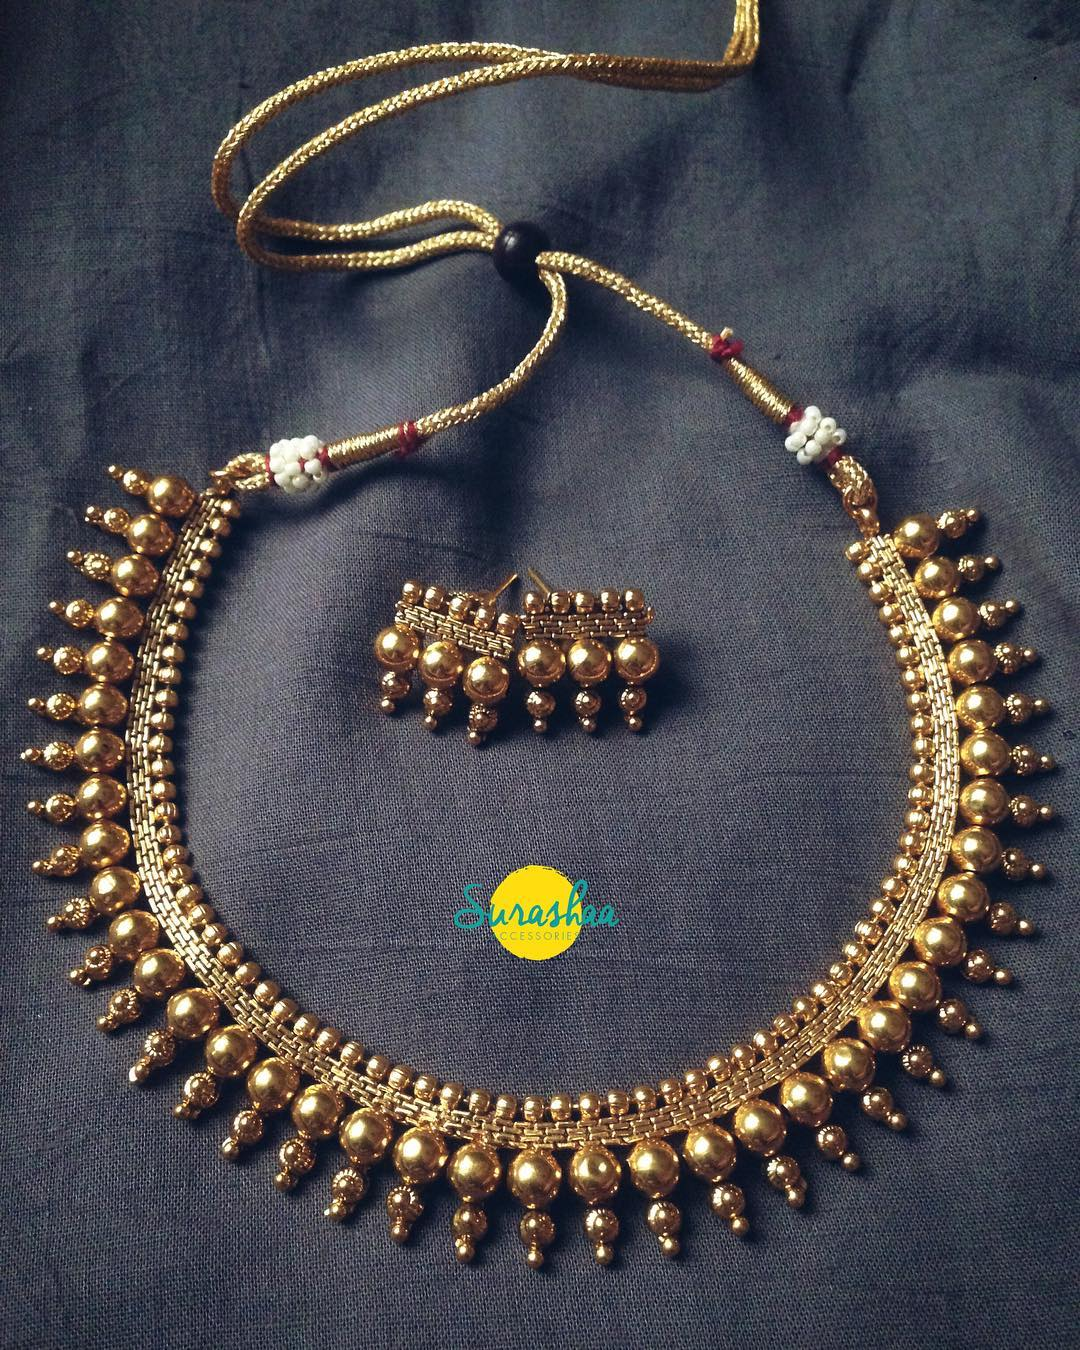 surashaa jewelleries